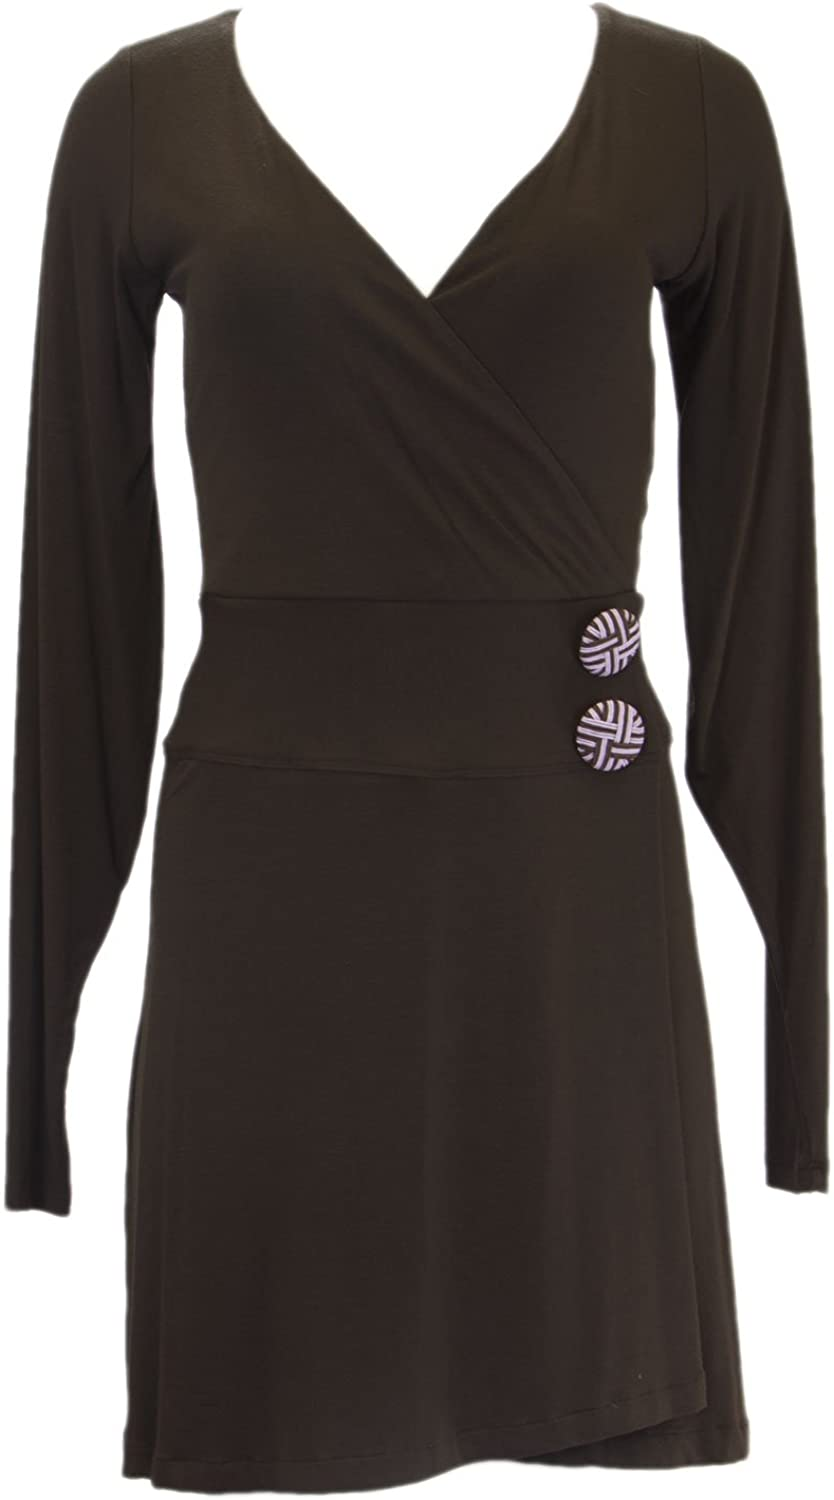 ANALILI Women's Oversized Buttons Accent Long Sleeve Wrap Dress Small Brown